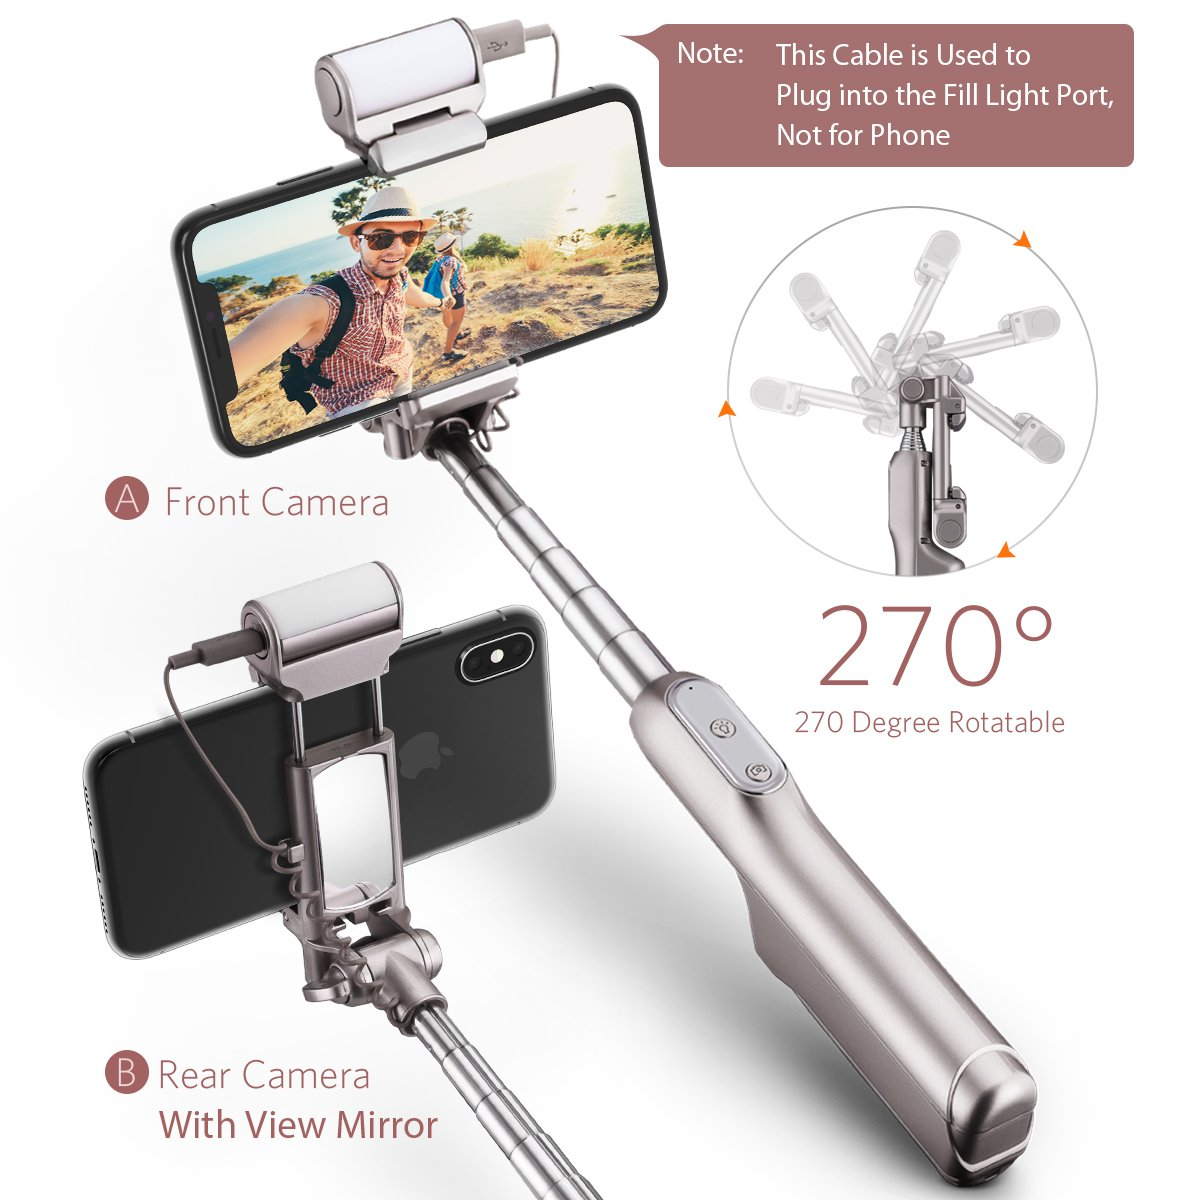 Mpow Selfie Stick Bluetooth, with 360 Degree Led Fill Light and Rear Mirror, Adjustable Head & a Carrying Bag, Fits for iPhone X/8/8P/7/7P/6s/6P/5S/SE, Galaxy S6/S7/S8/A7, Huawei and More by Mpow (Image #4)